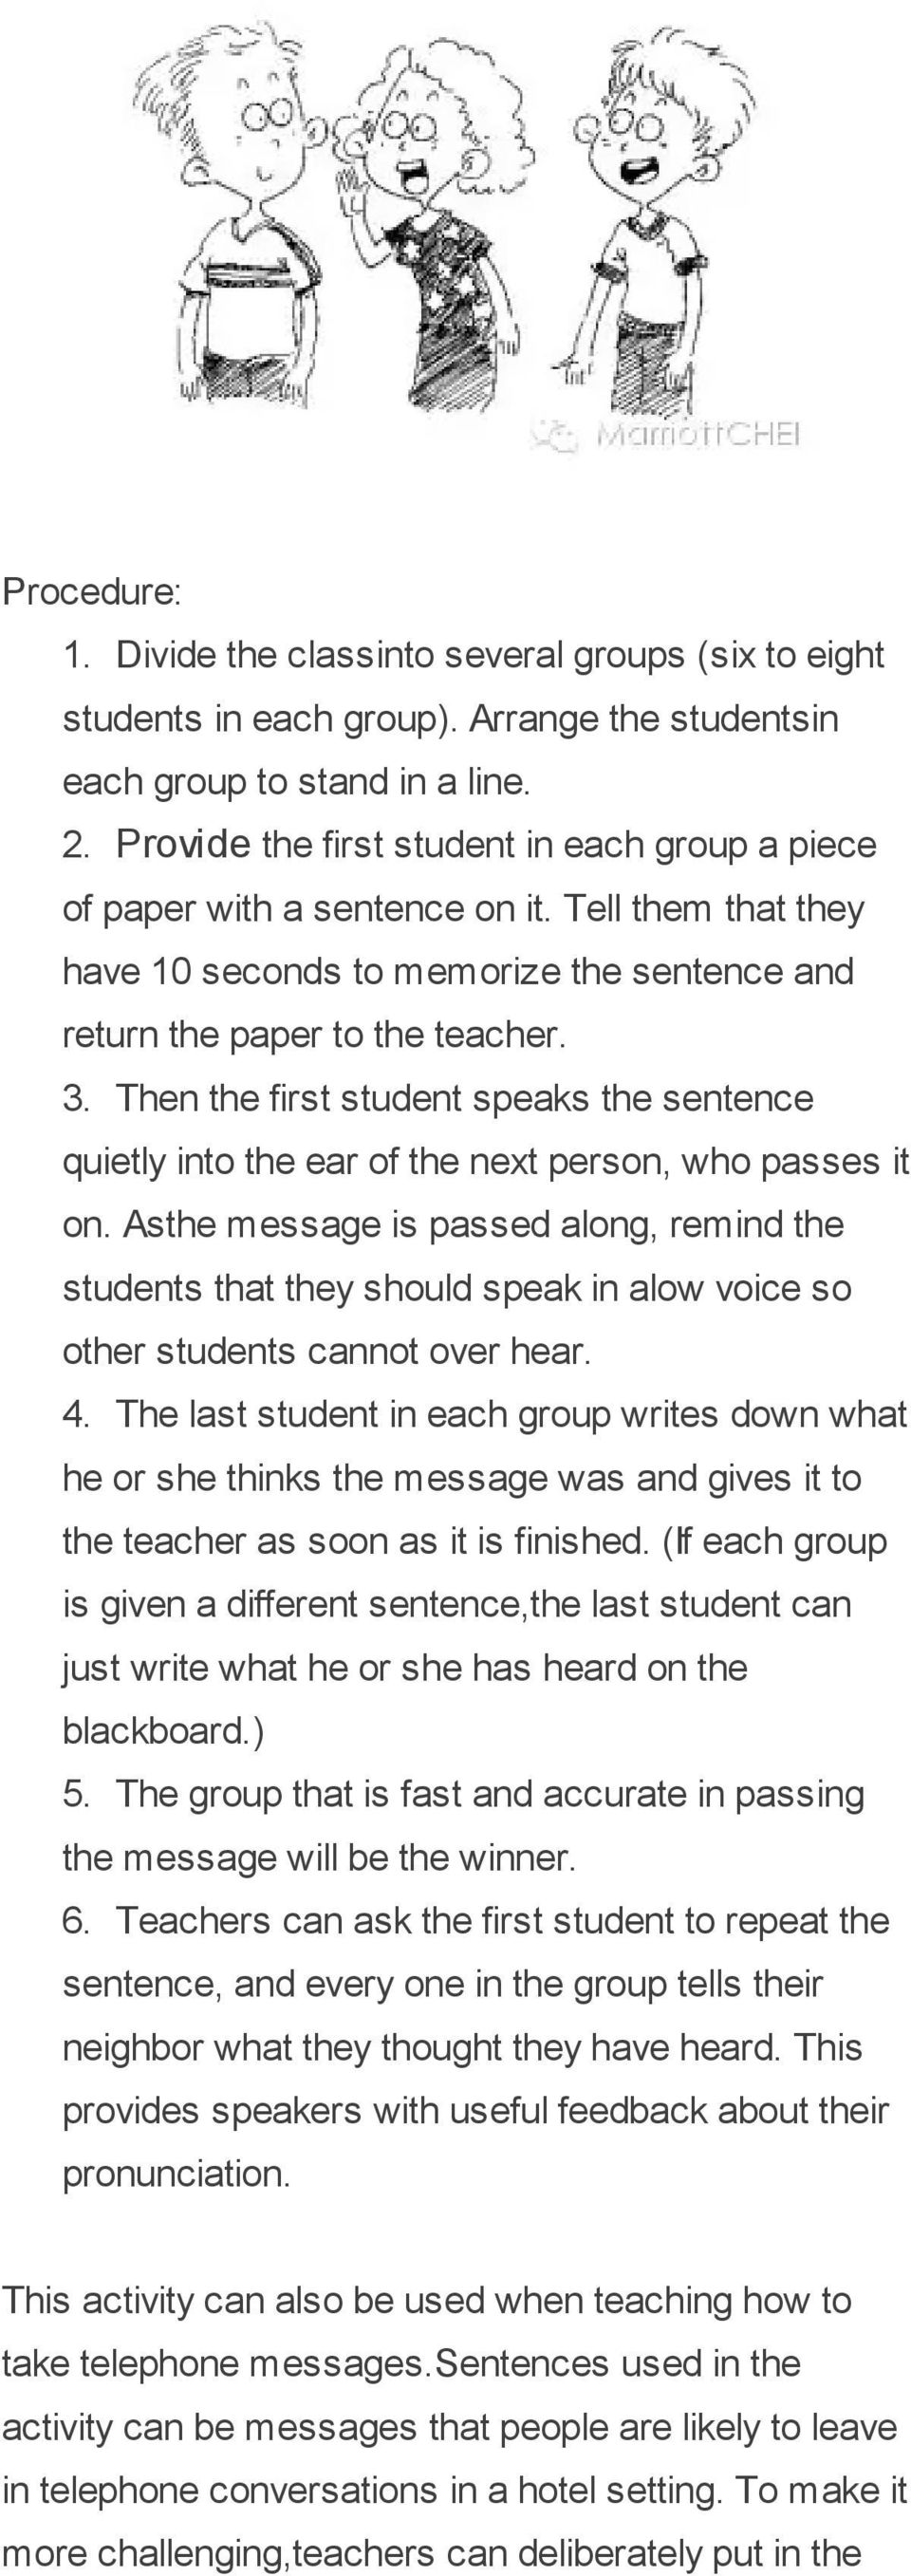 Then the first student speaks the sentence quietly into the ear of the next person, who passes it on.